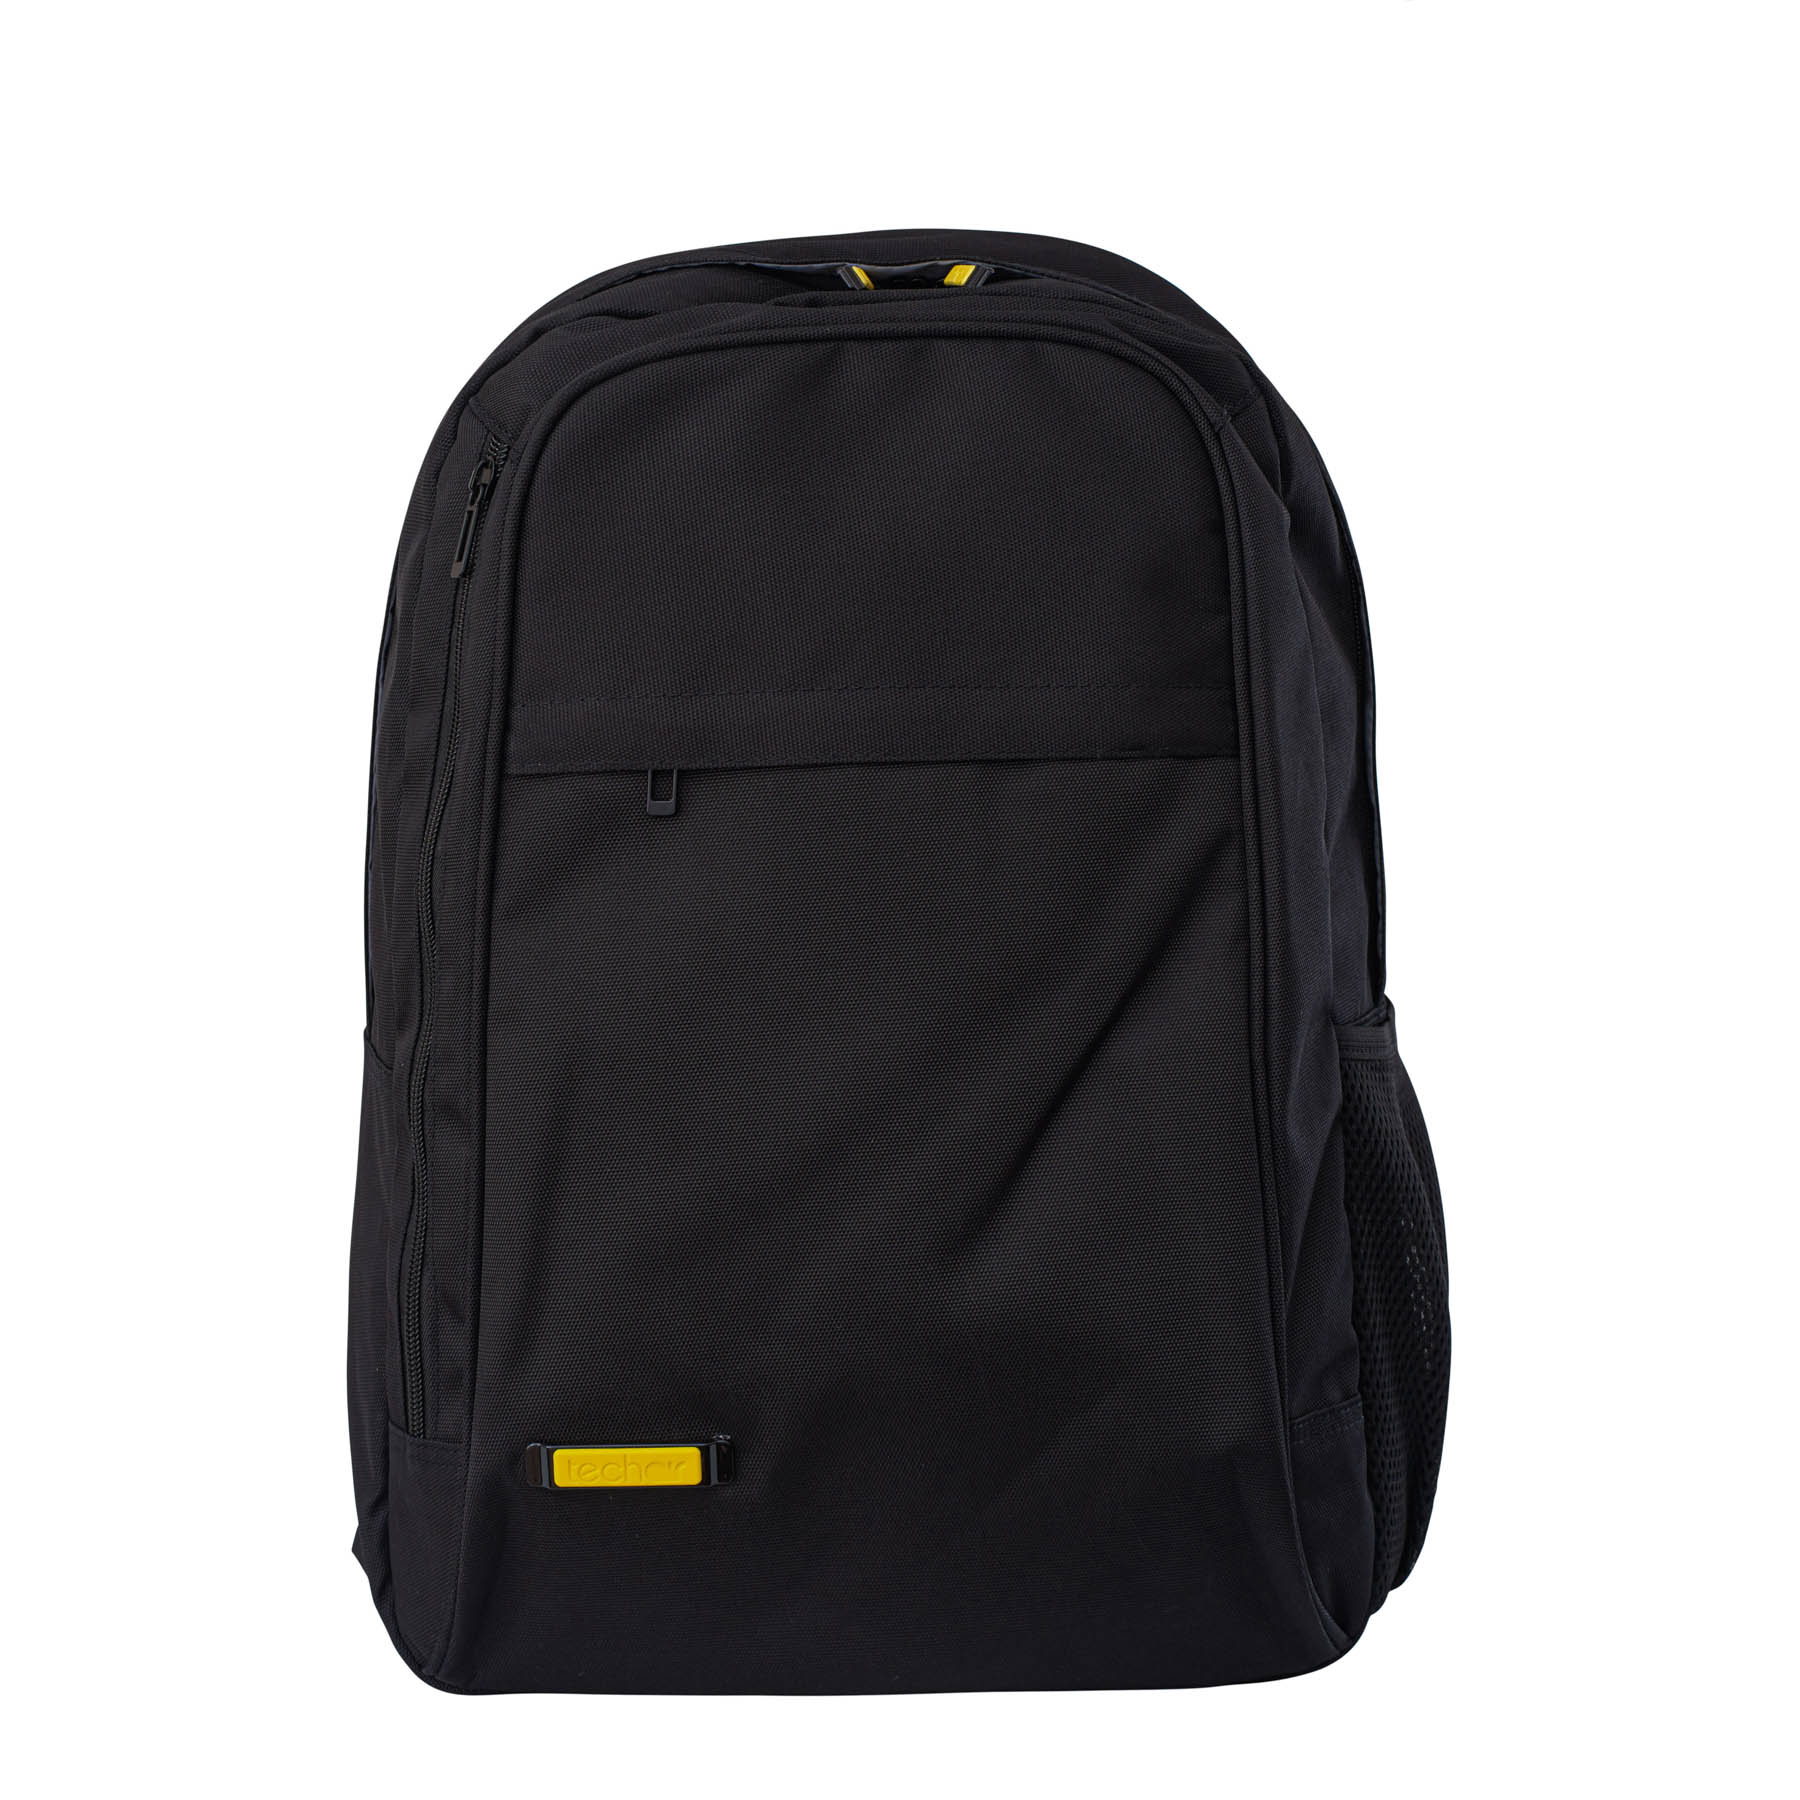 "Tech air TANZ0722 notebook case 39.6 cm (15.6"") Backpack Black"